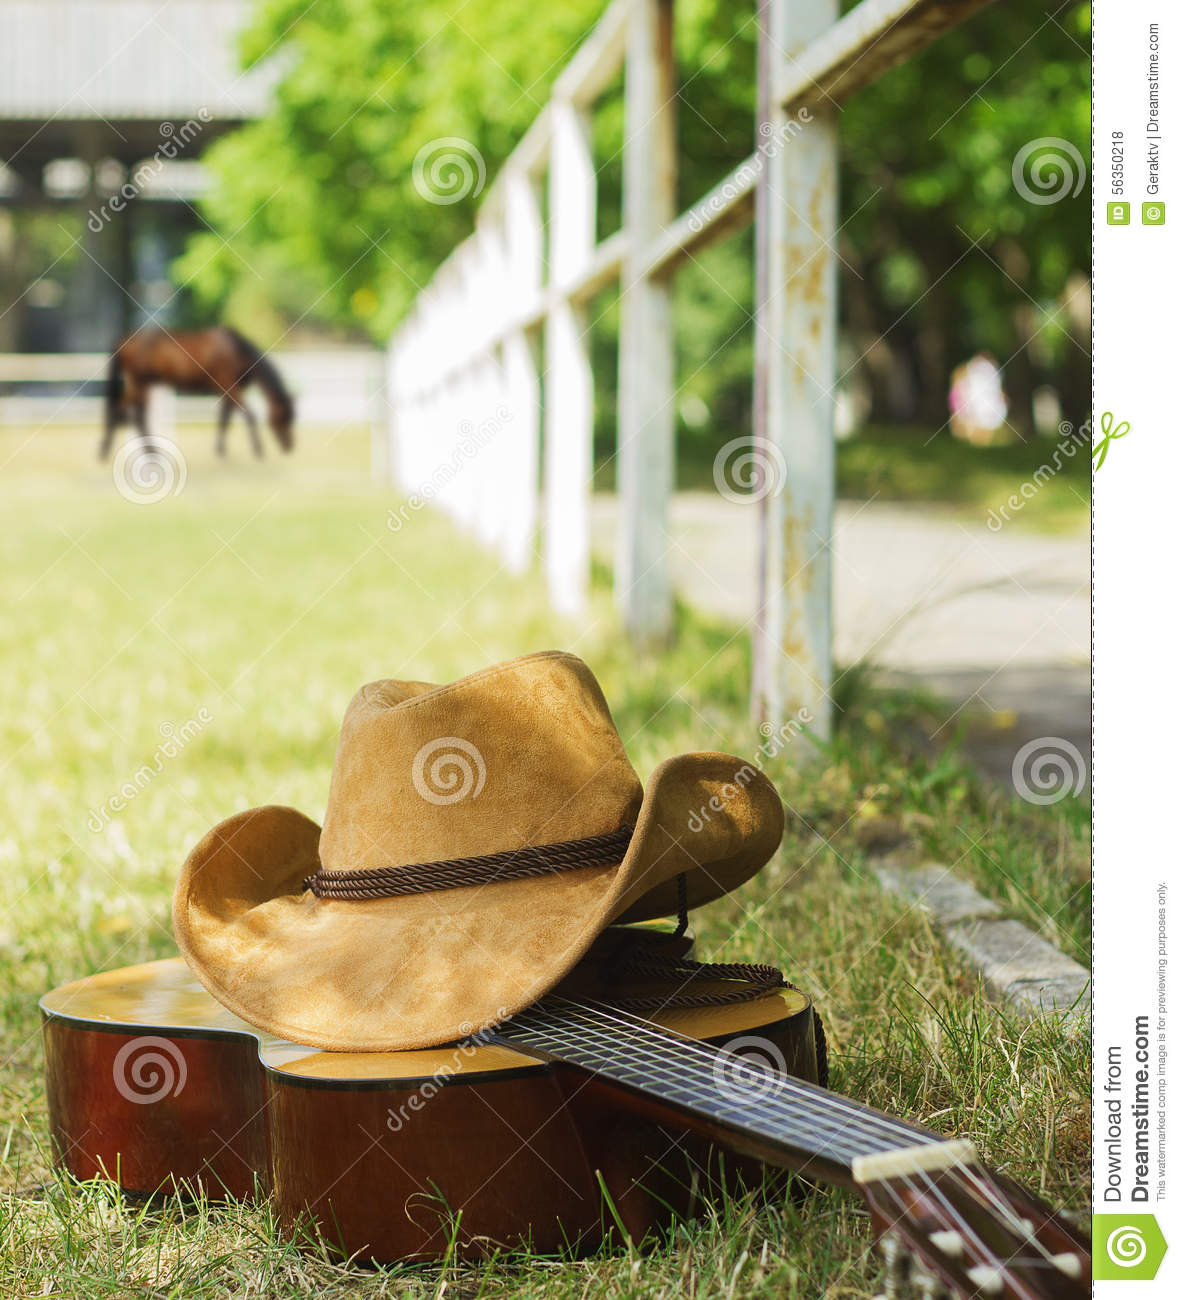 American Ranch With Cowboy Hat And Guitar Stock Photo